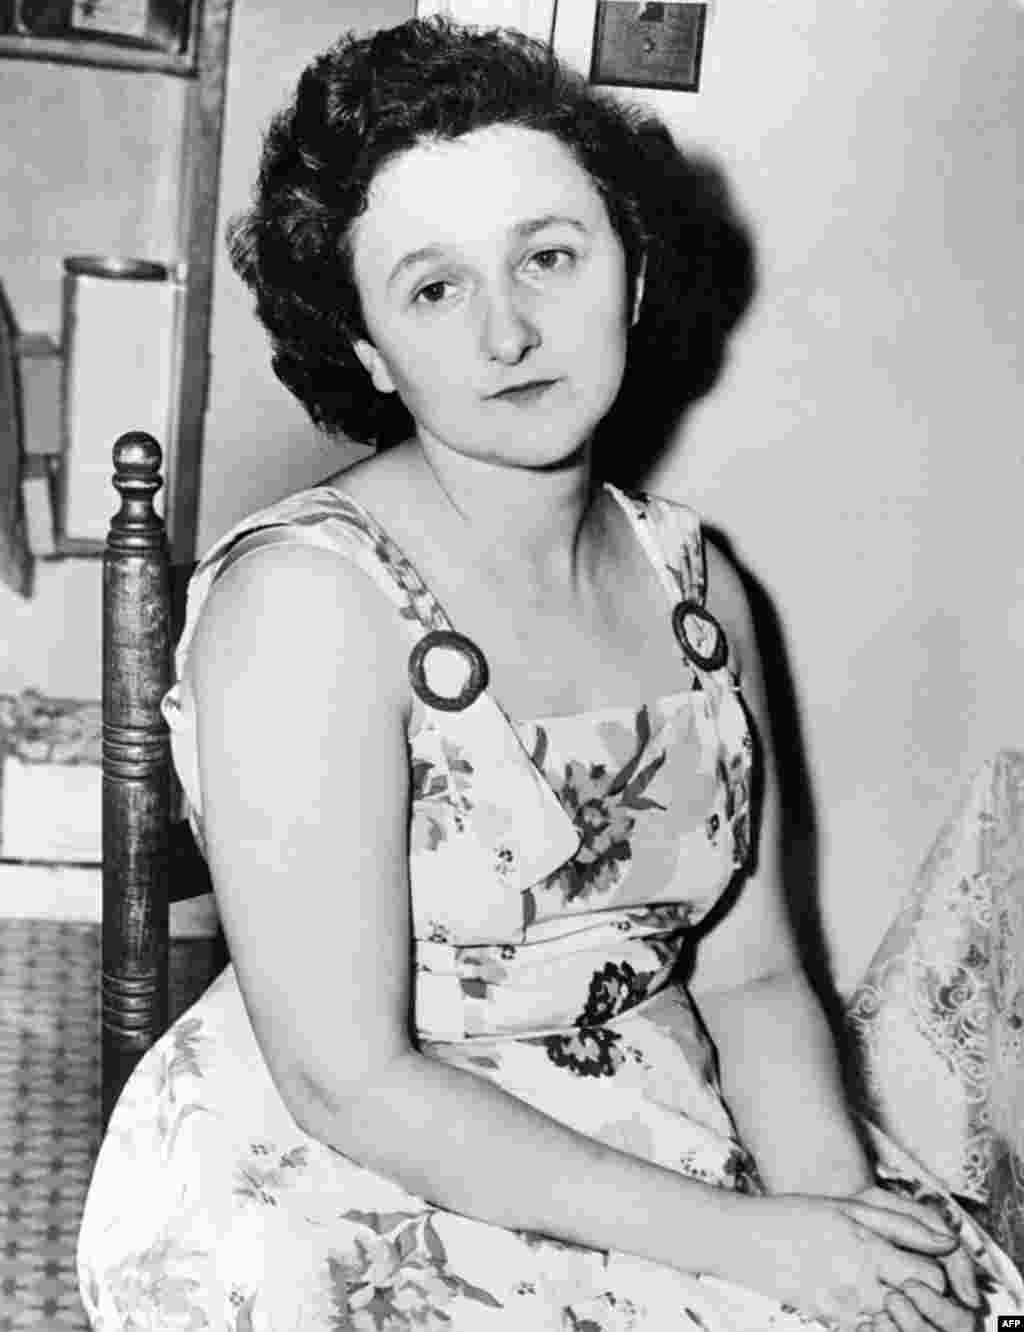 Later evidence emerged that Julius Rosenberg had in fact acted as a courier and recruiter for Soviet intelligence. But the involvement of Ethel Rosenberg, seen here in an undated photo, was more ambiguous, and may have involved little more than typing notes for Julius.